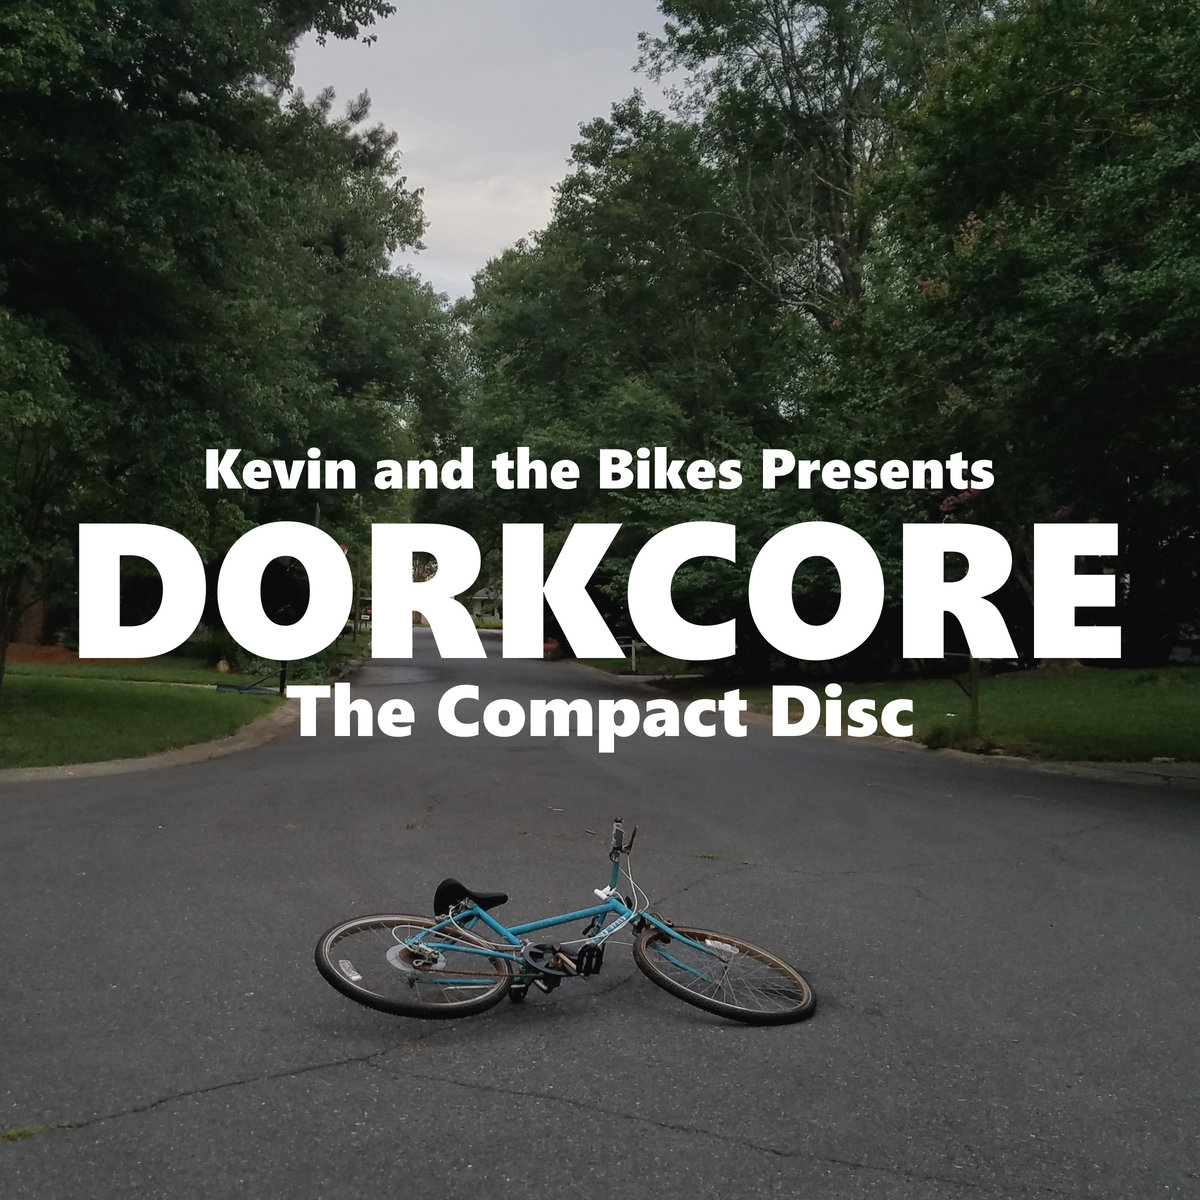 Dorkcore: The Compact Disc   Kevin and the Bikes